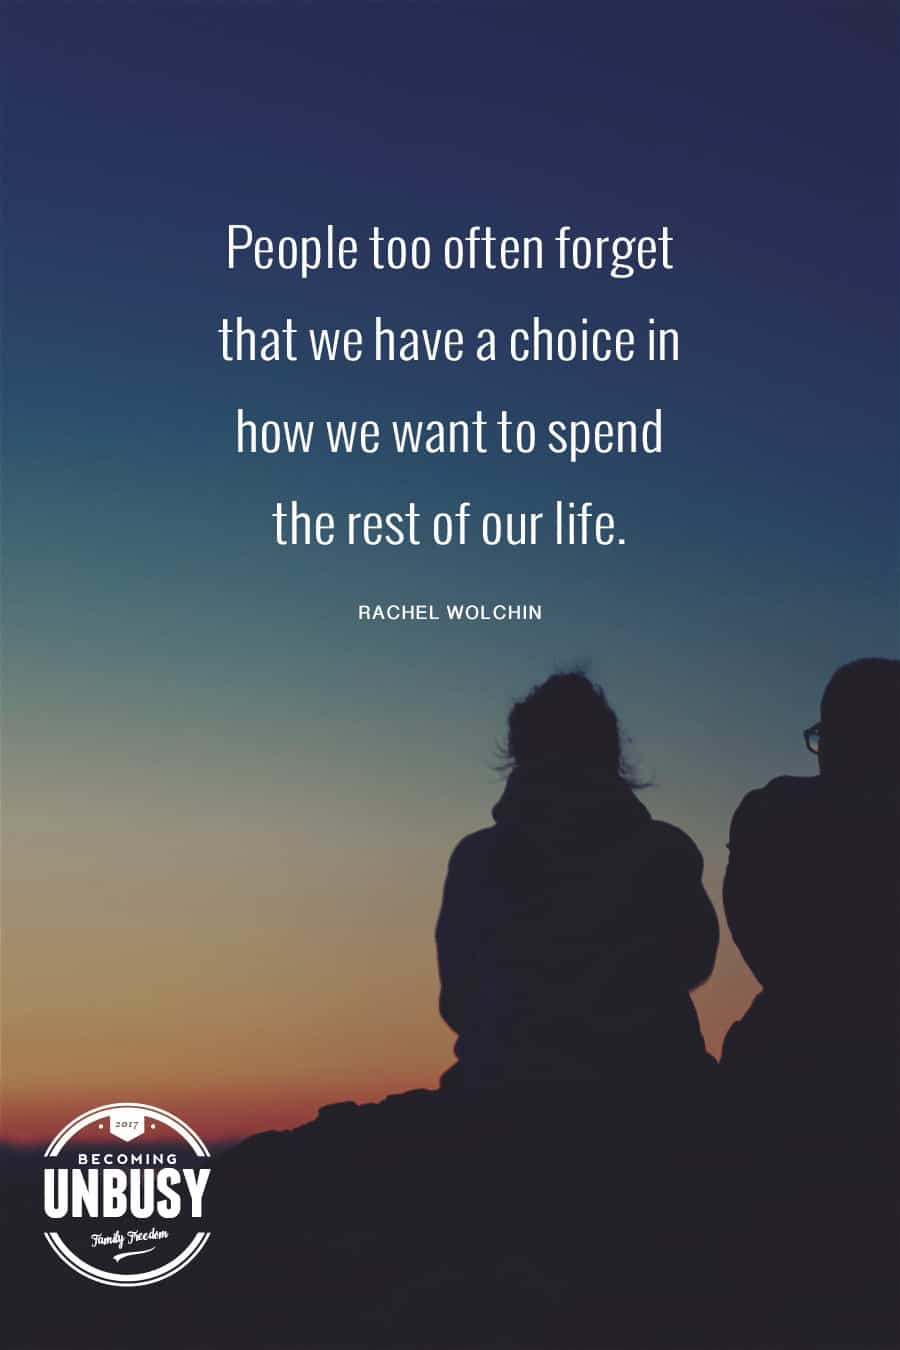 People too often forget that we have a choice in how we want to spend the rest of our lives.